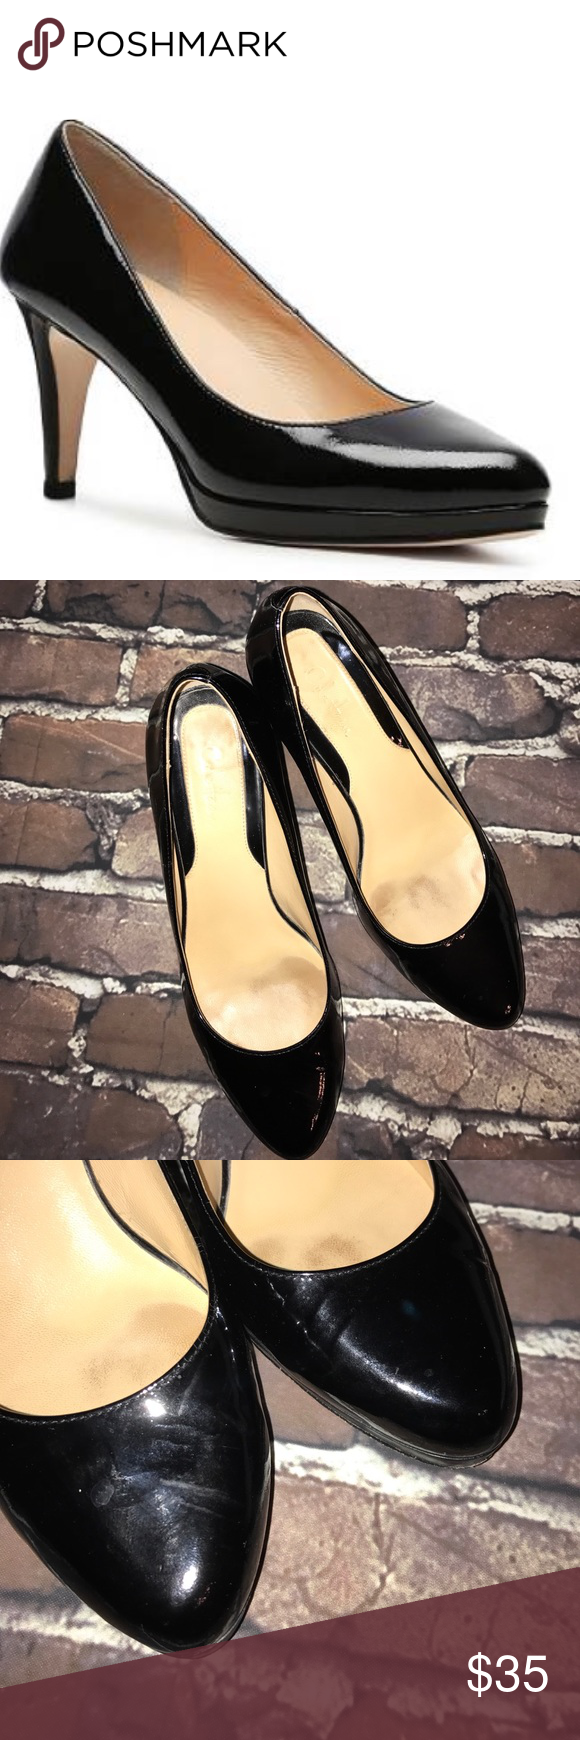 """COLE HAAN~Margot Mid-heel Patent Leather Pumps~7 Apron 3"""" heel with a half inch platform..feature leather soles and padded insoles. Great for work and beyond. Cole Haan Shoes Heels"""